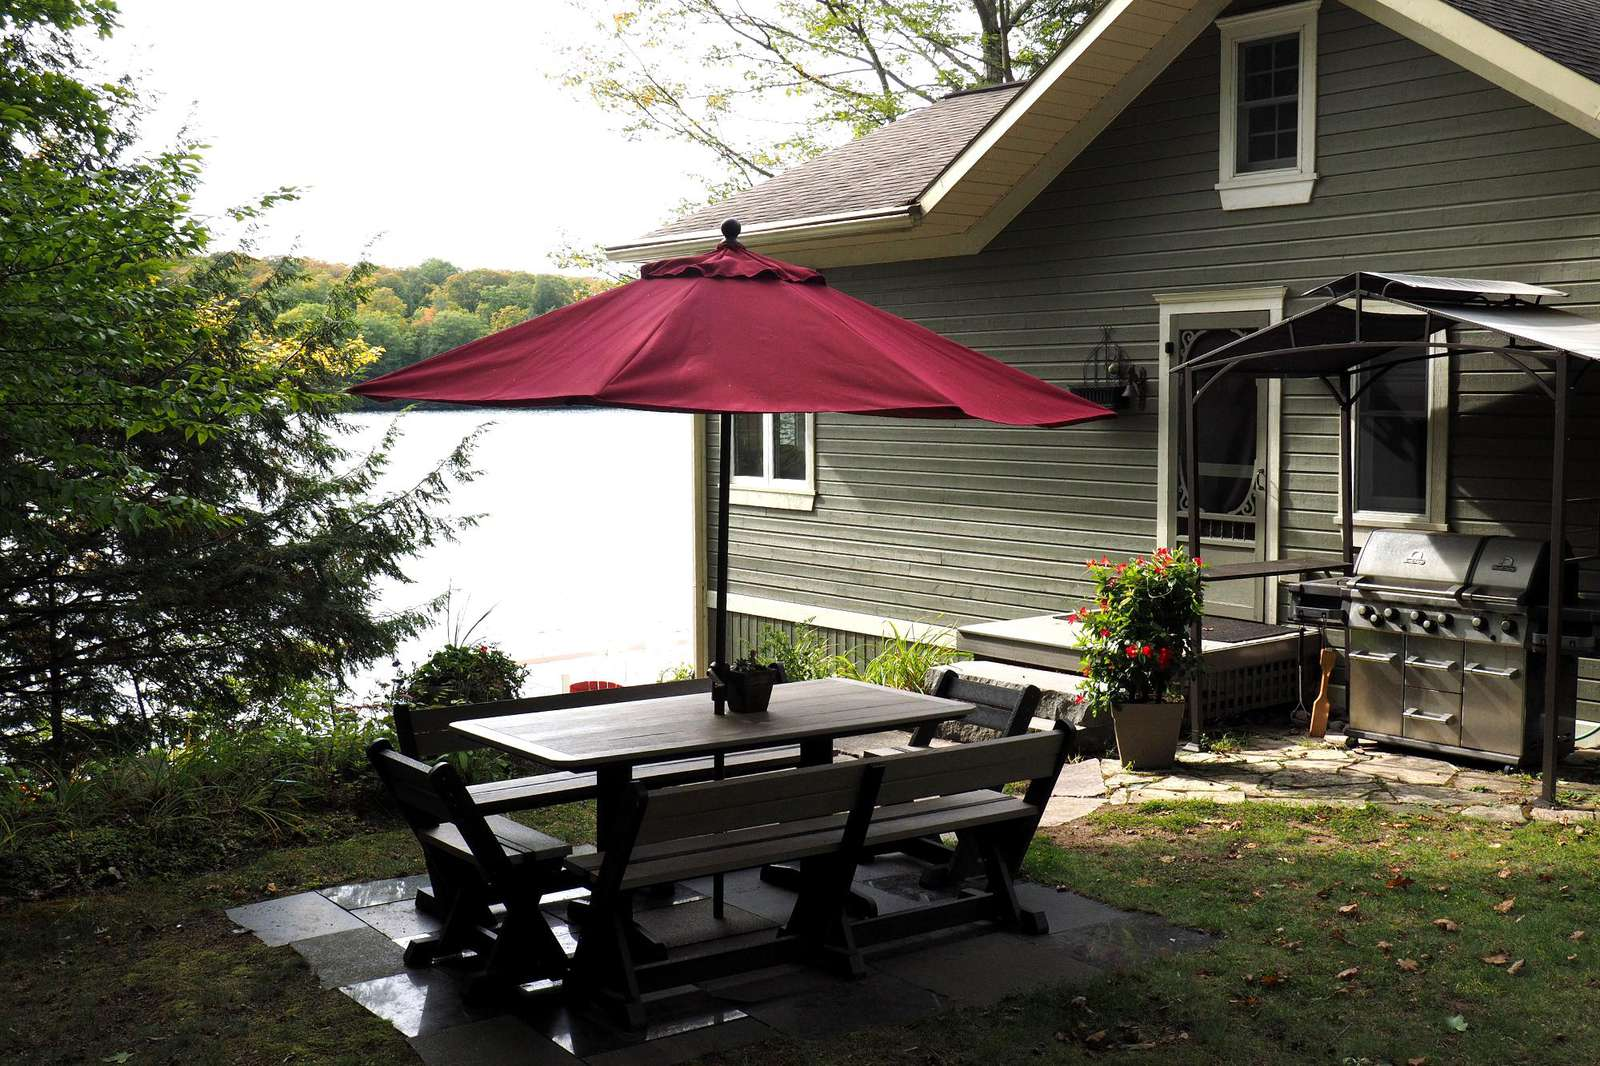 Outdoor Table with BBQ